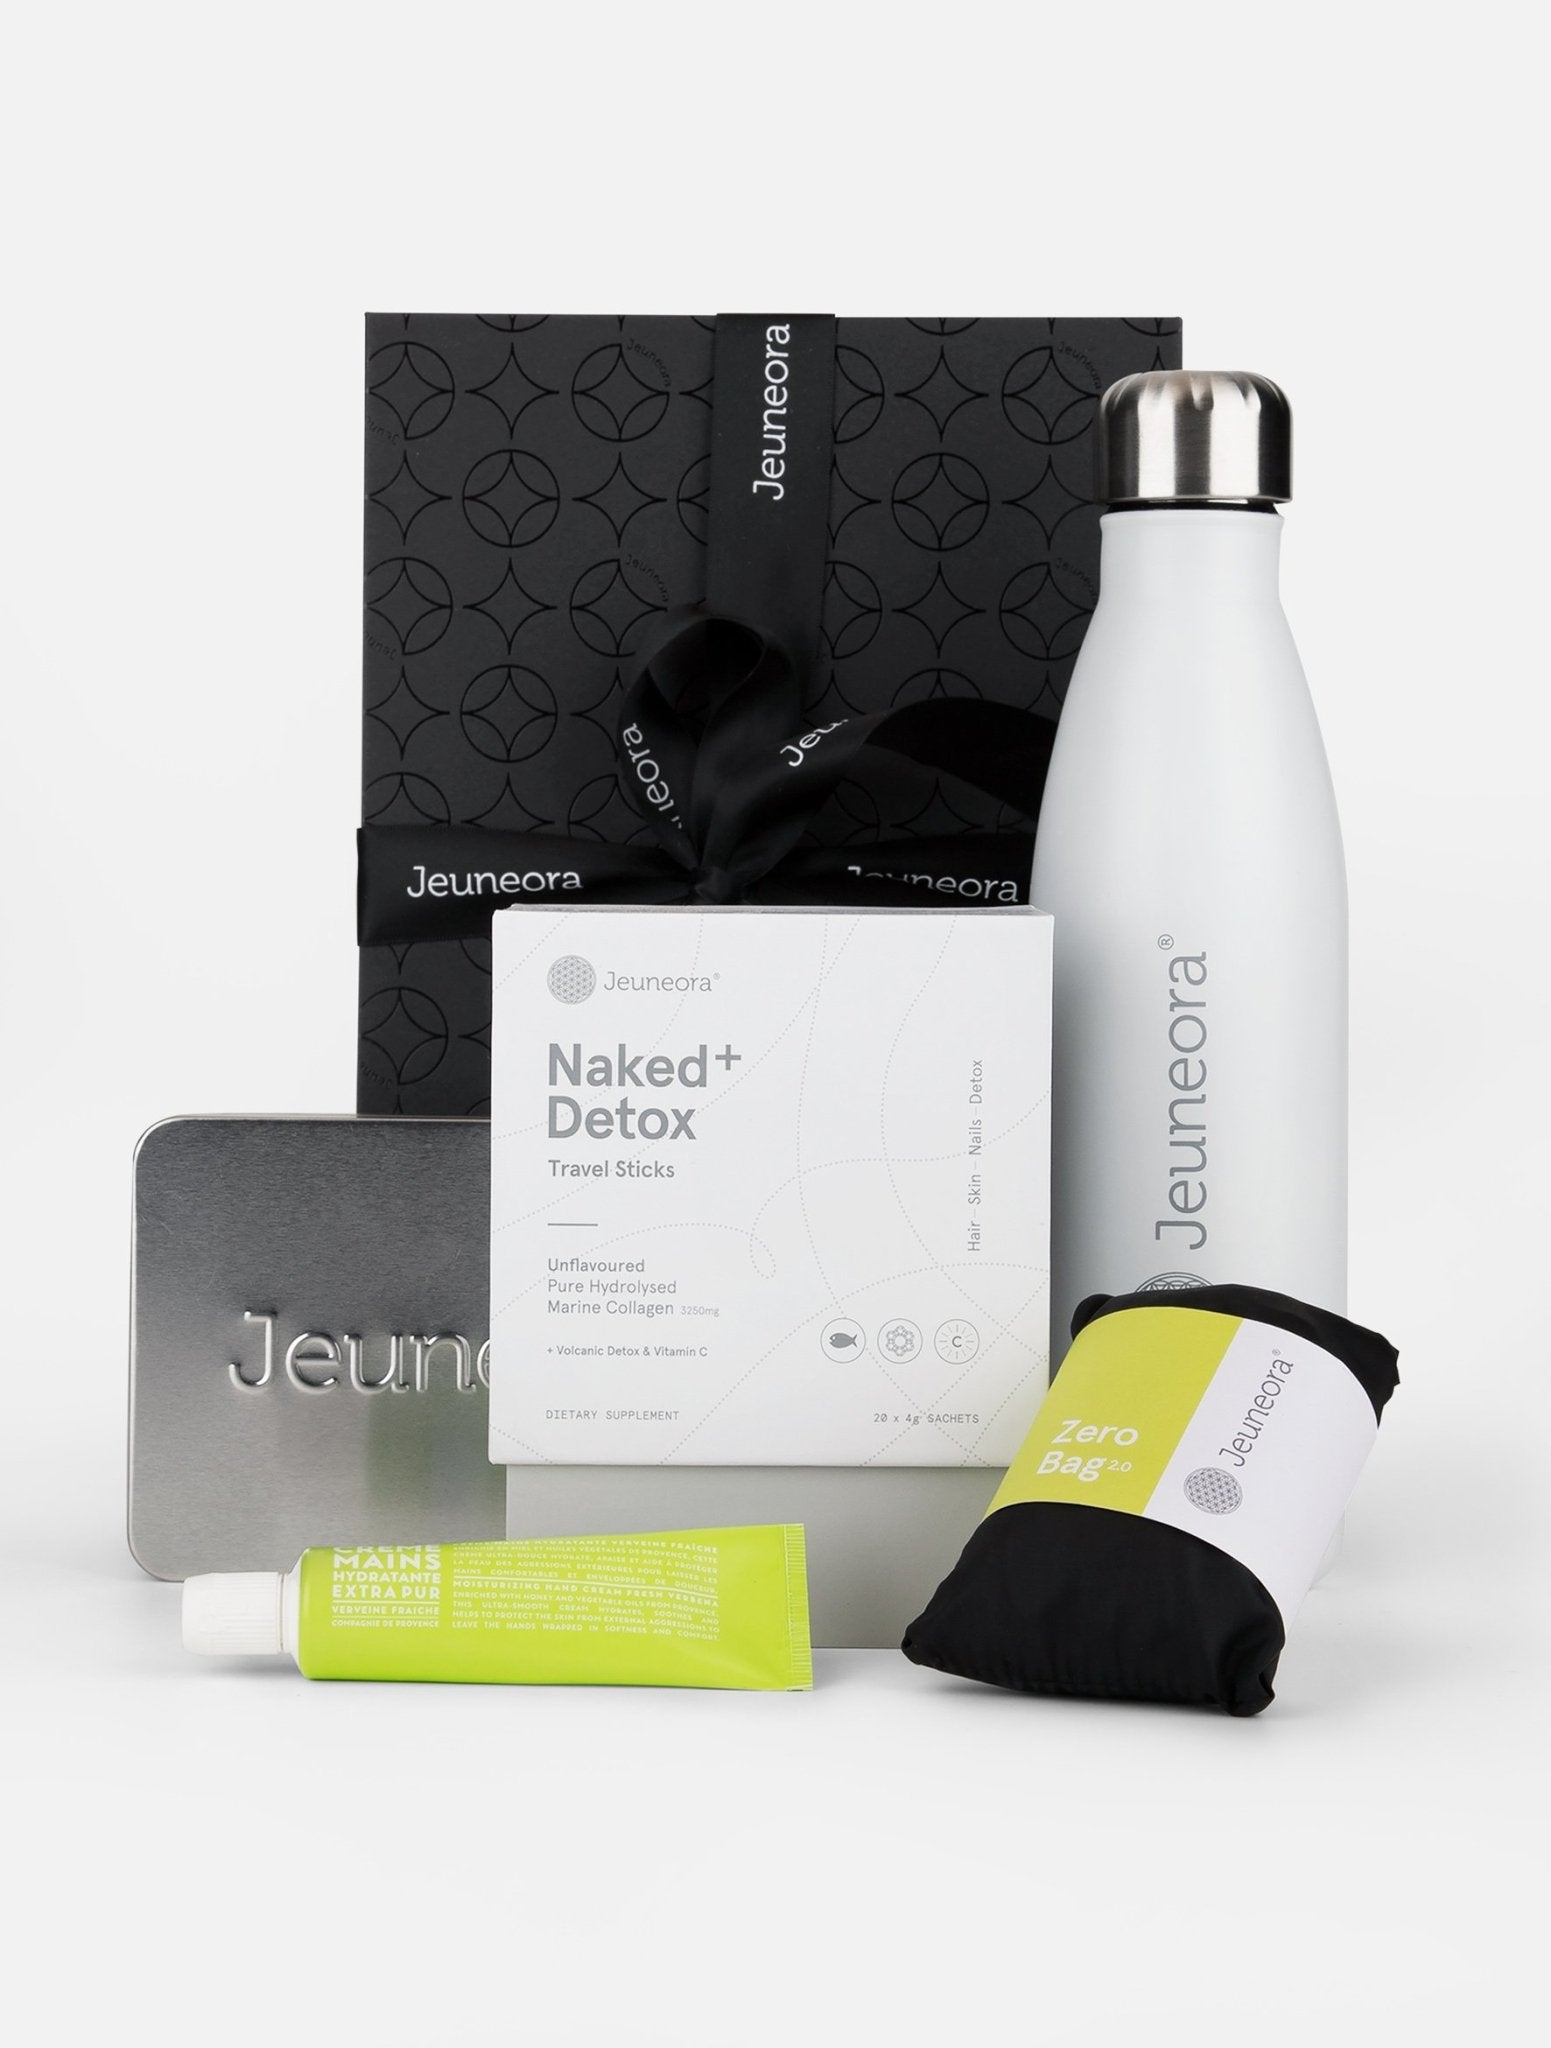 Weekender Gift Box With Naked+ Detox Travel Sticks - Jeuneora® Australia